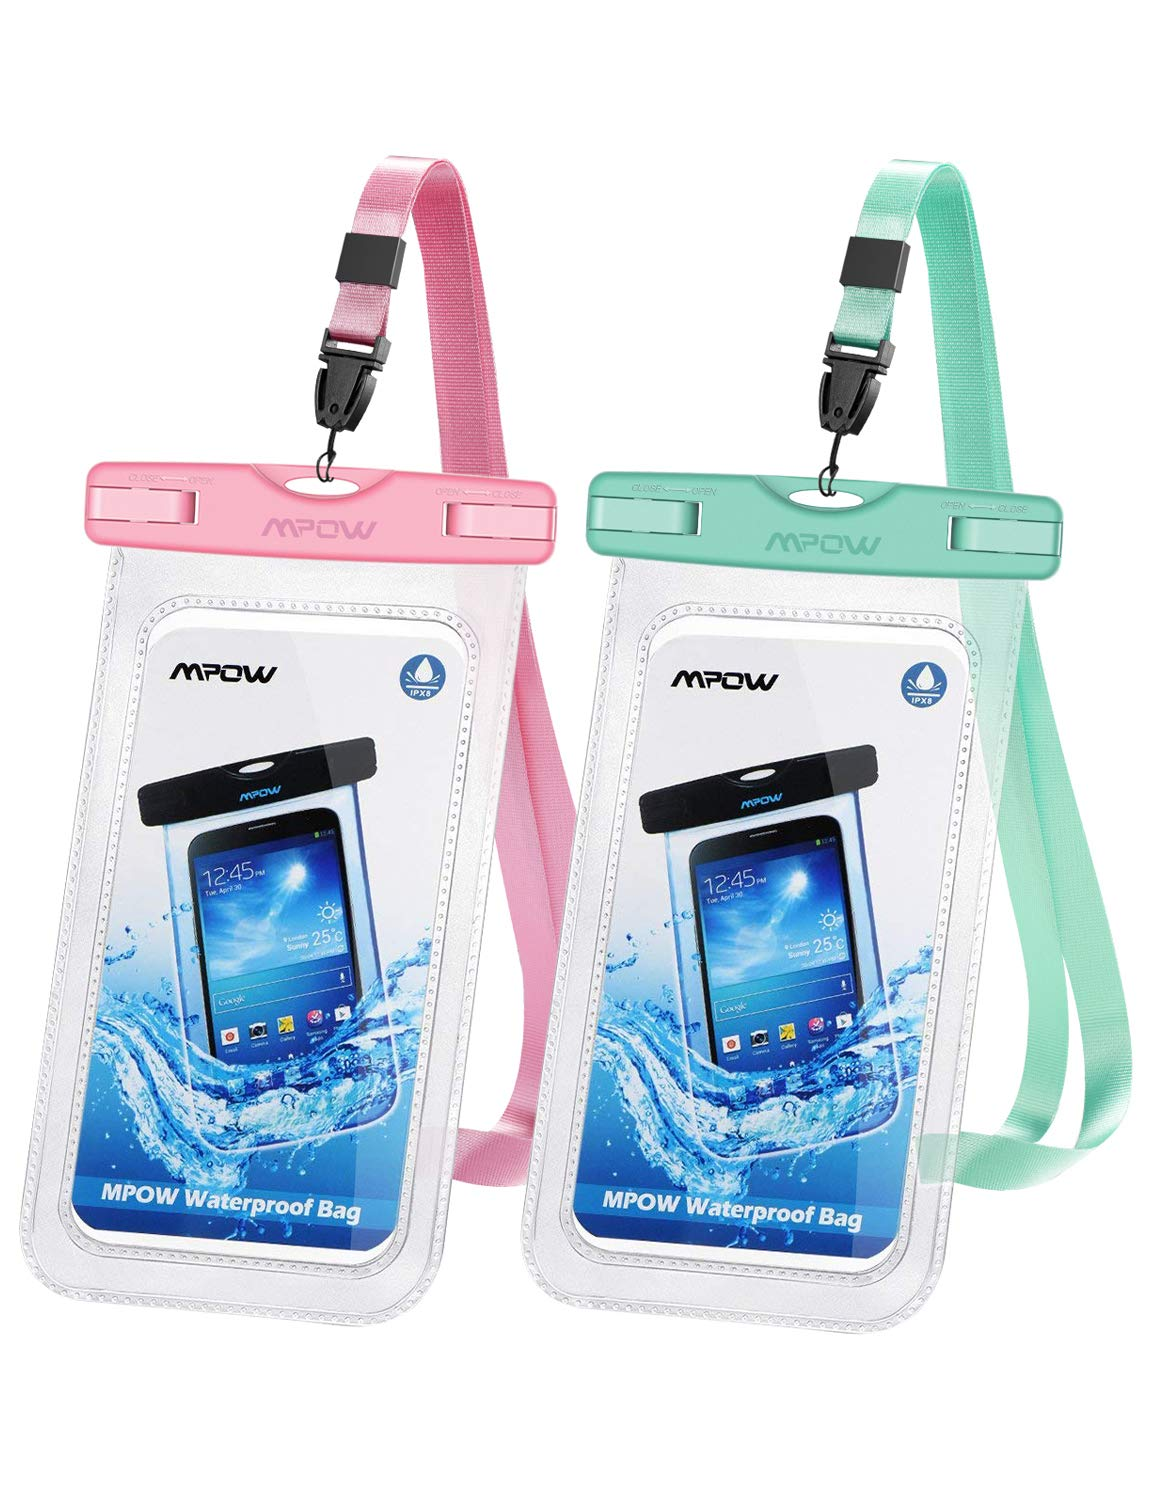 info for 0baf6 e25be Mpow 097 Universal Waterproof Case, IPX8 Waterproof Phone Pouch Dry Bag  Compatible for iPhone Xs Max/XR/X/8/8P/7/7P Galaxy up to 6.5